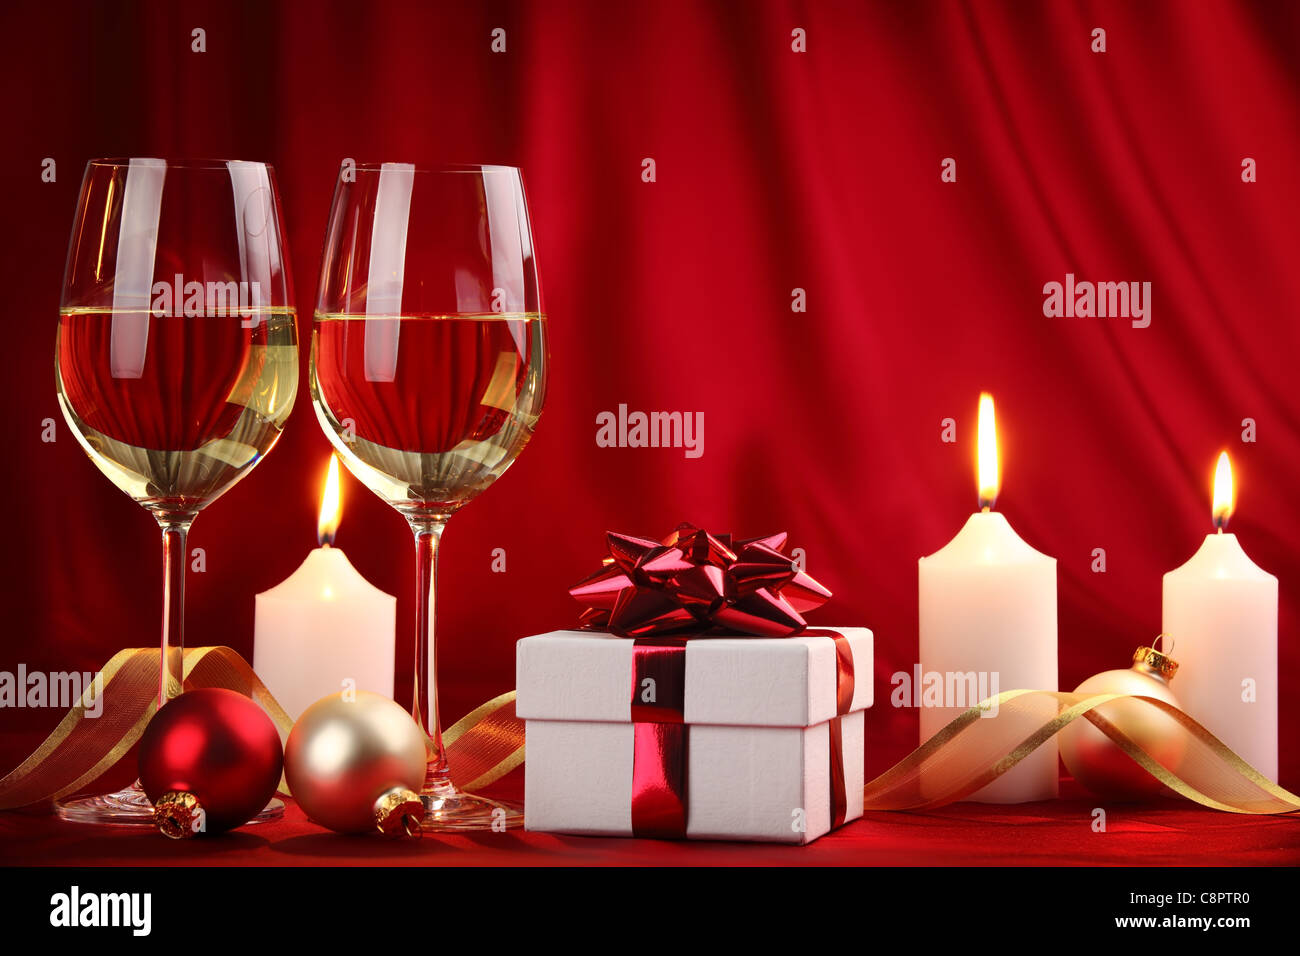 Christmas Celebration,Champagne in Christmas setting. - Stock Image